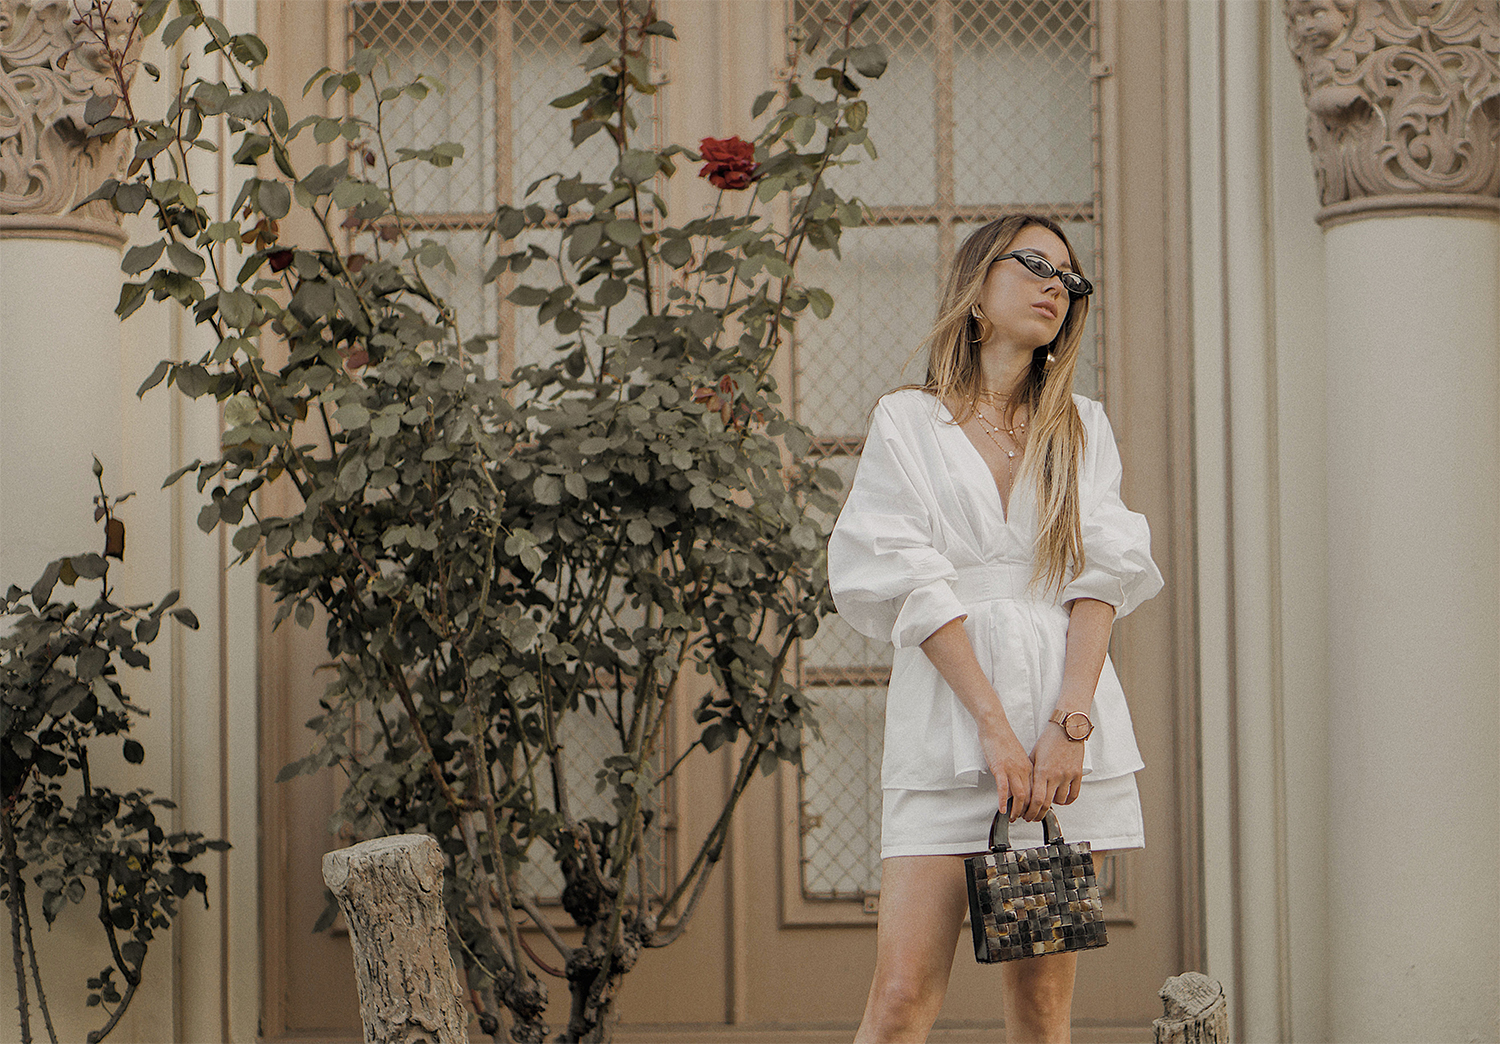 white_outfit_look_ideas_street_style_total_white_Céline_inspired_Ring_Toe_Lace_Up_Sandals_summer_san_francisco_fashion_blogger_bay_area_the_white_ocean_lena_juice_07